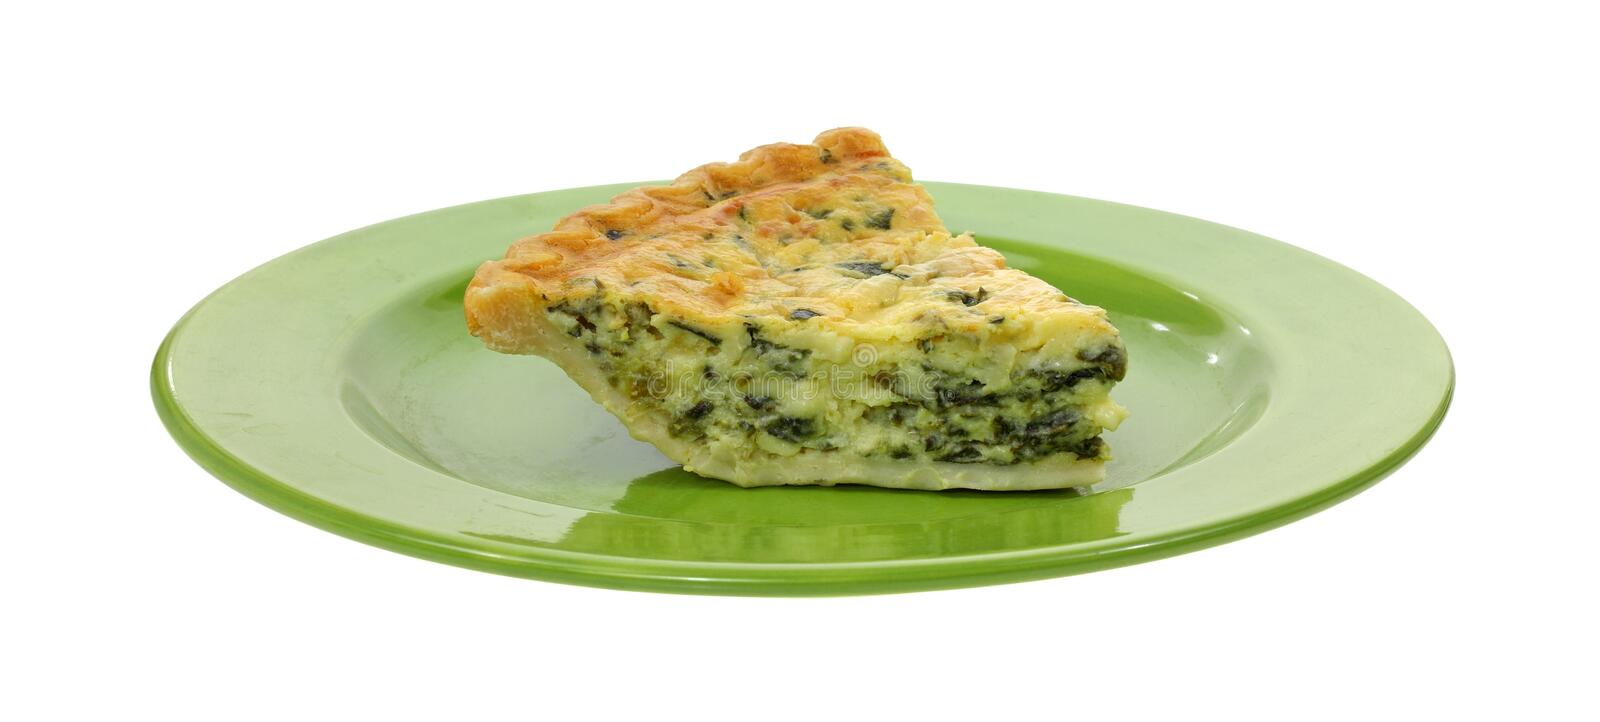 Download Serving Of Spinach Quiche On Green Plate Stock Image - Image: 21149491